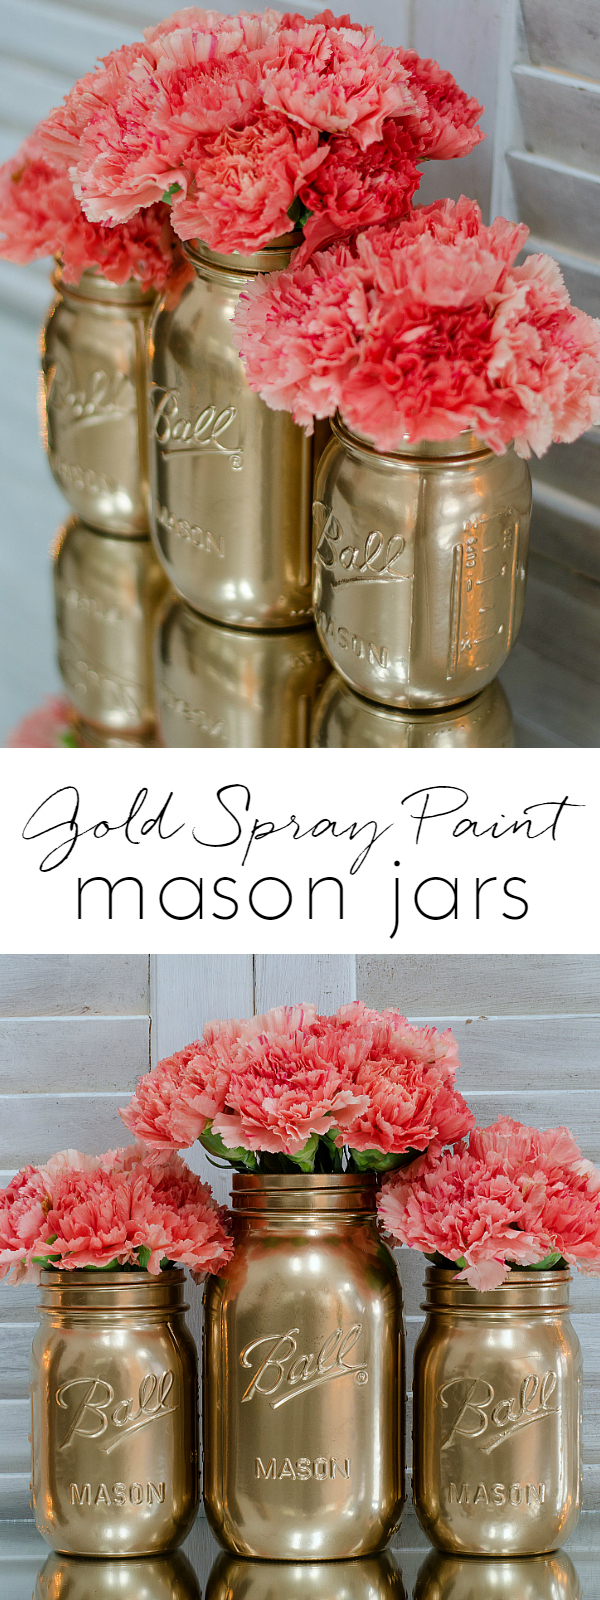 Spray Paint Mason Jars Gold